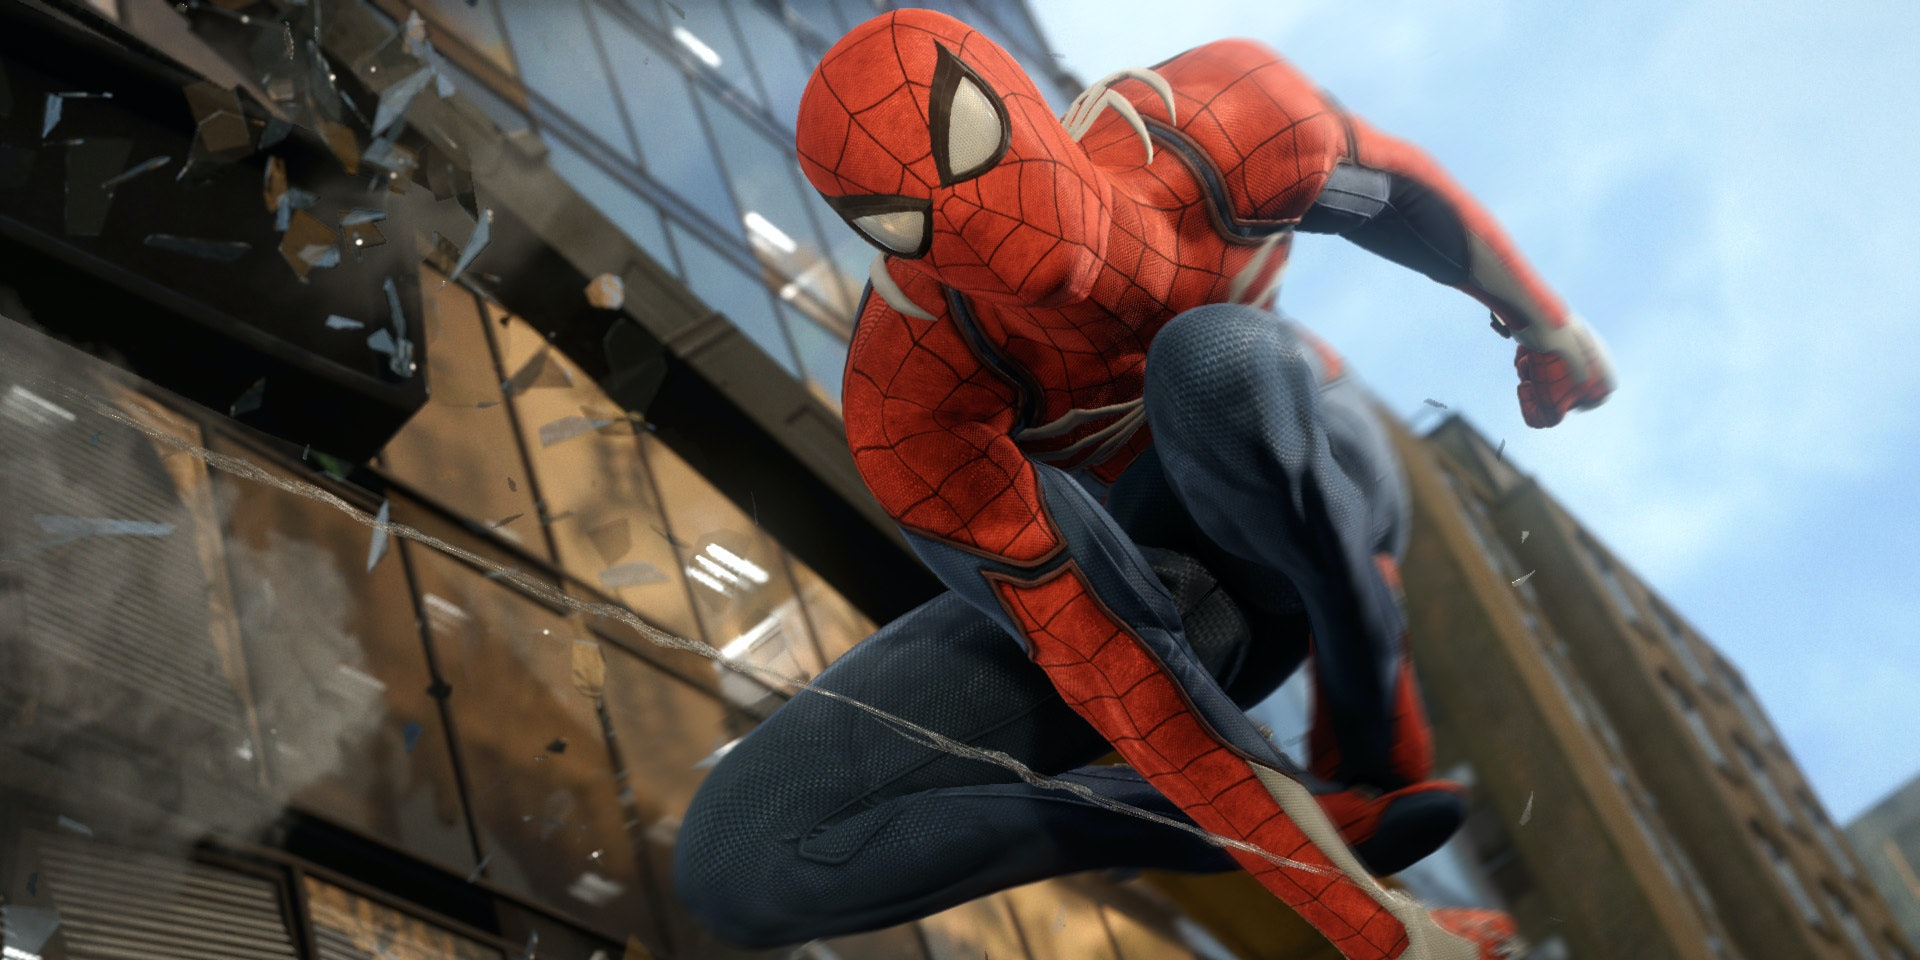 The Spider-Man game for the PS4 from Marvel and Insomniac Games